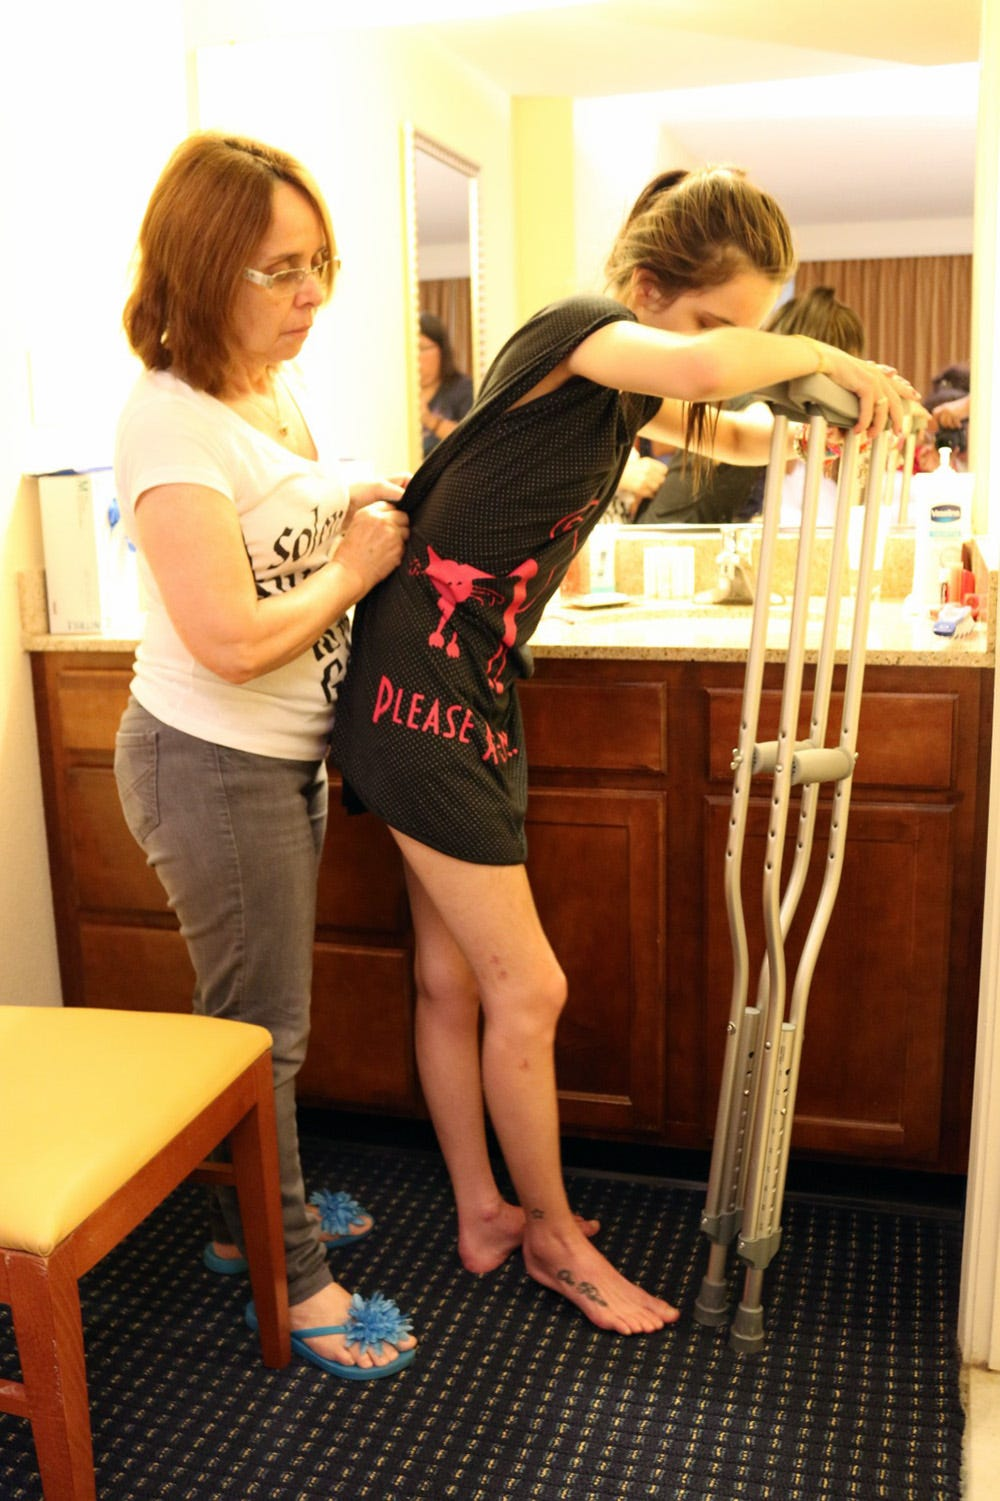 Stefany Neves, right, is assisted by her mother, Eliane Neves, at the Boston hotel where she stayed while undergoing outpatient physical therapy.